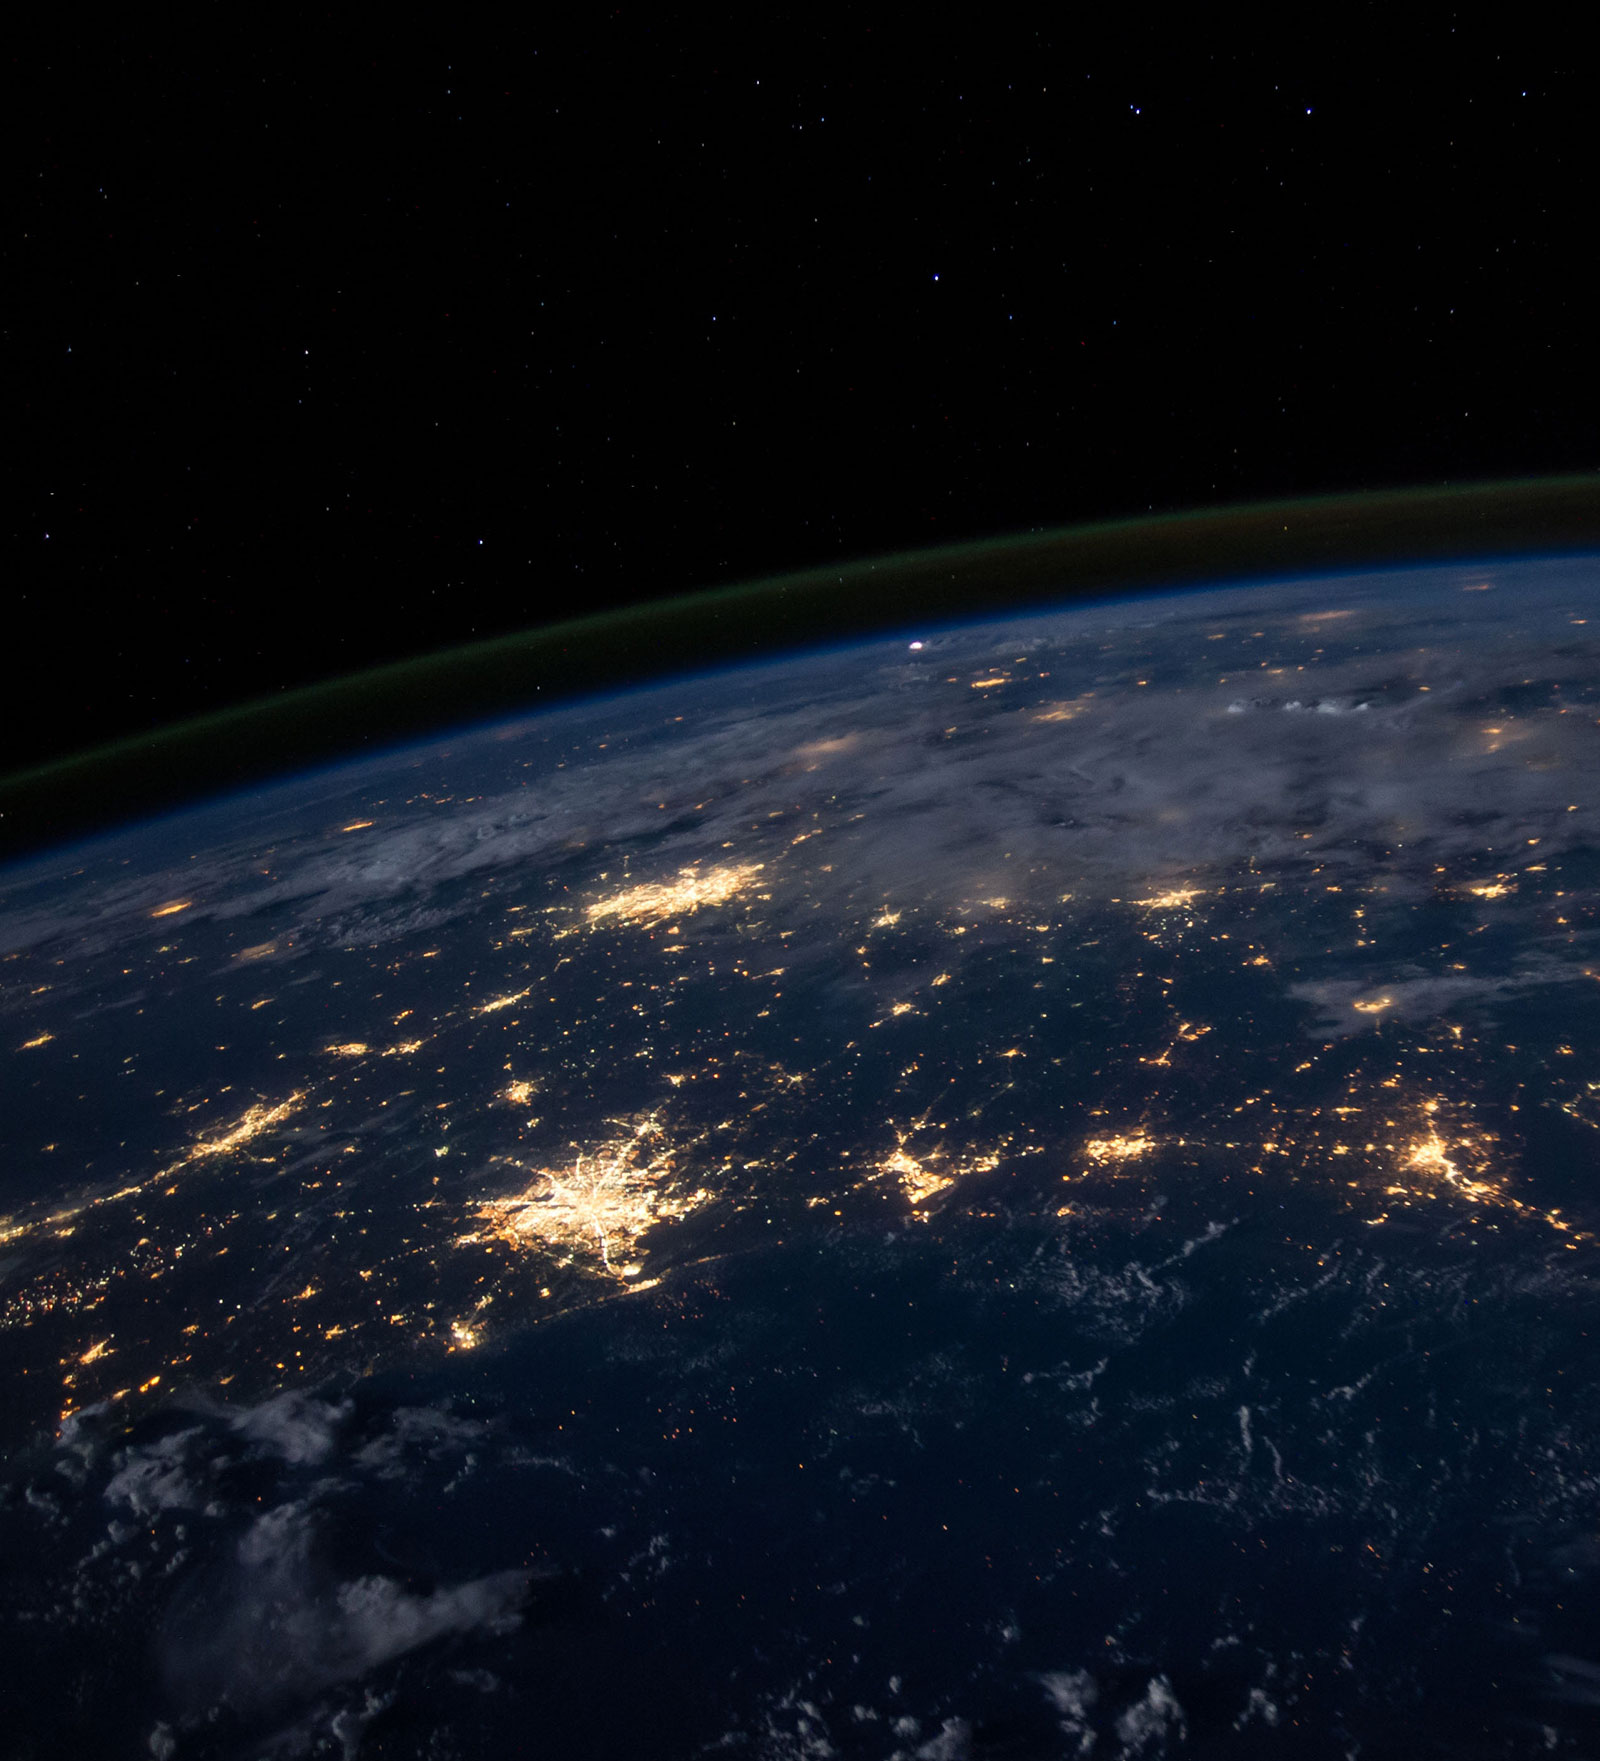 Picture of the World with lights showing amiea ditributors